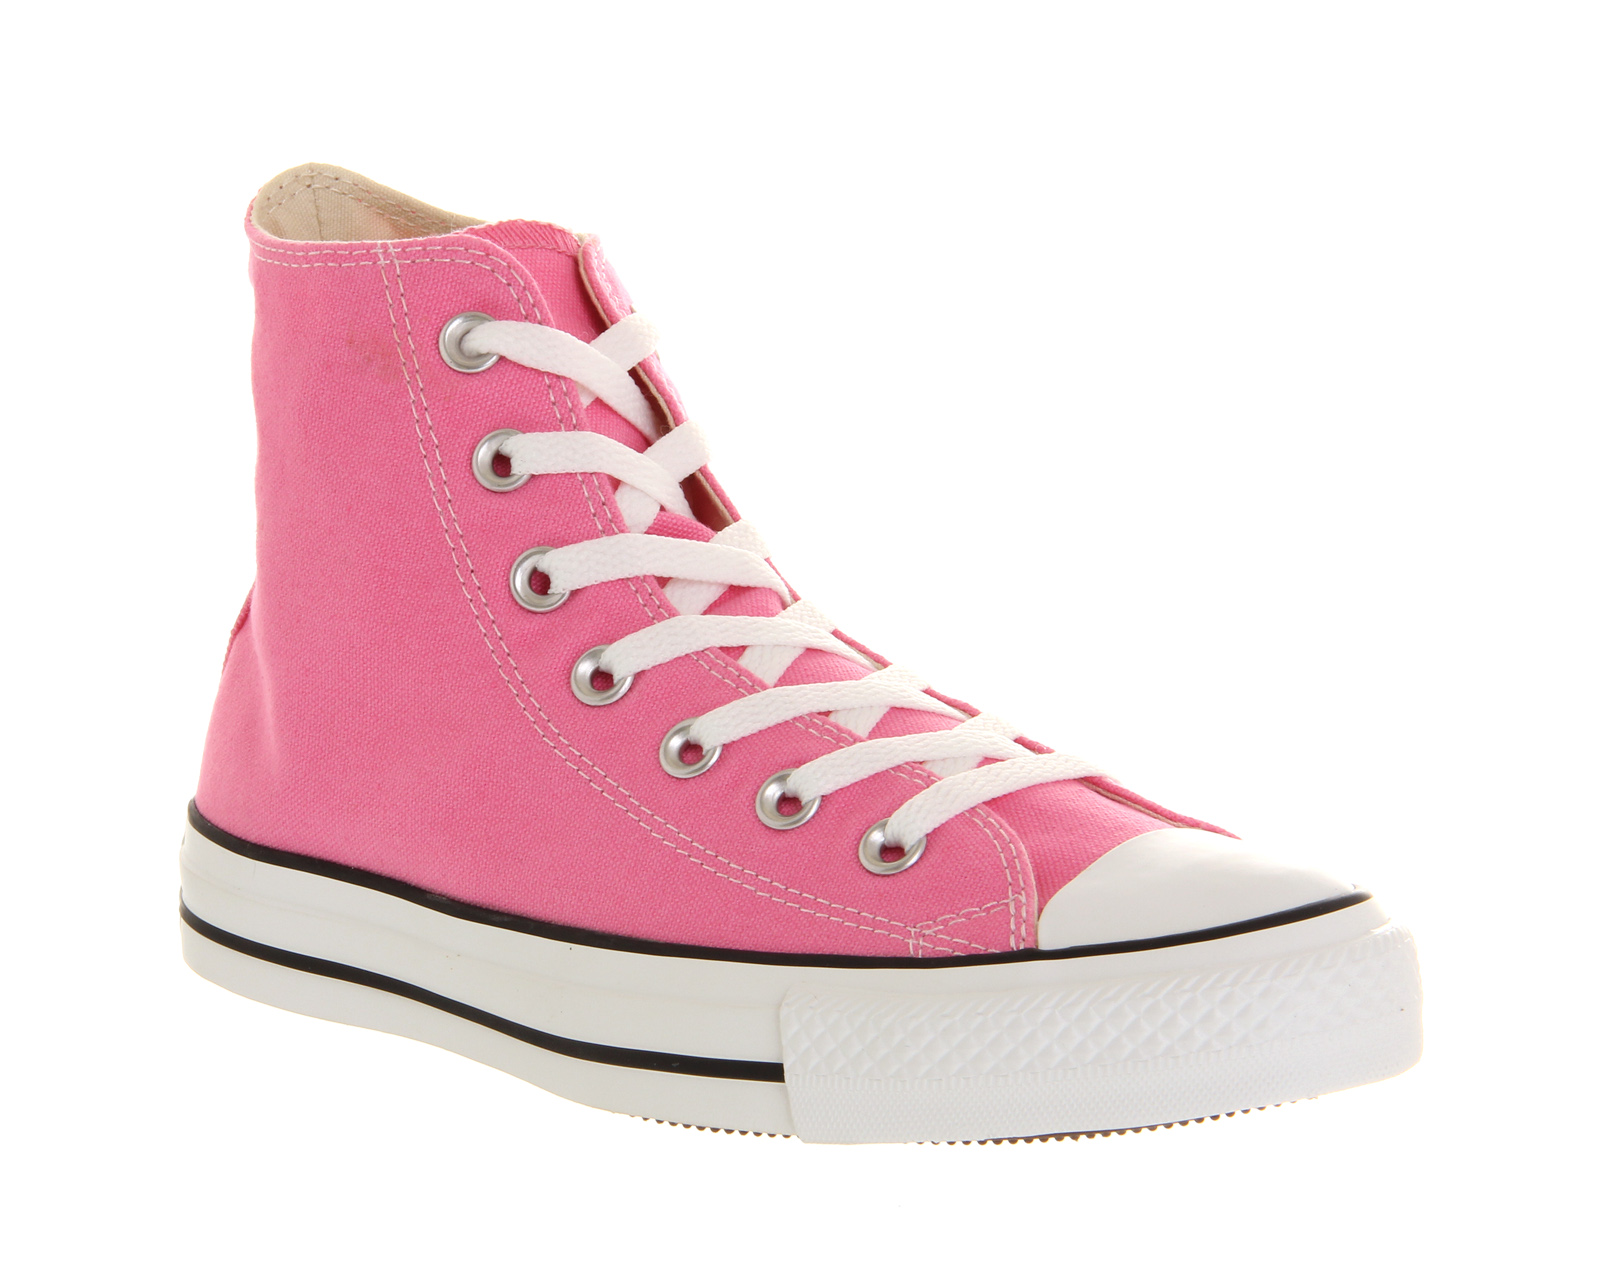 Converse PINK Converse All Star Hi PINK Converse CANVAS Trainers Schuhes 4097e8